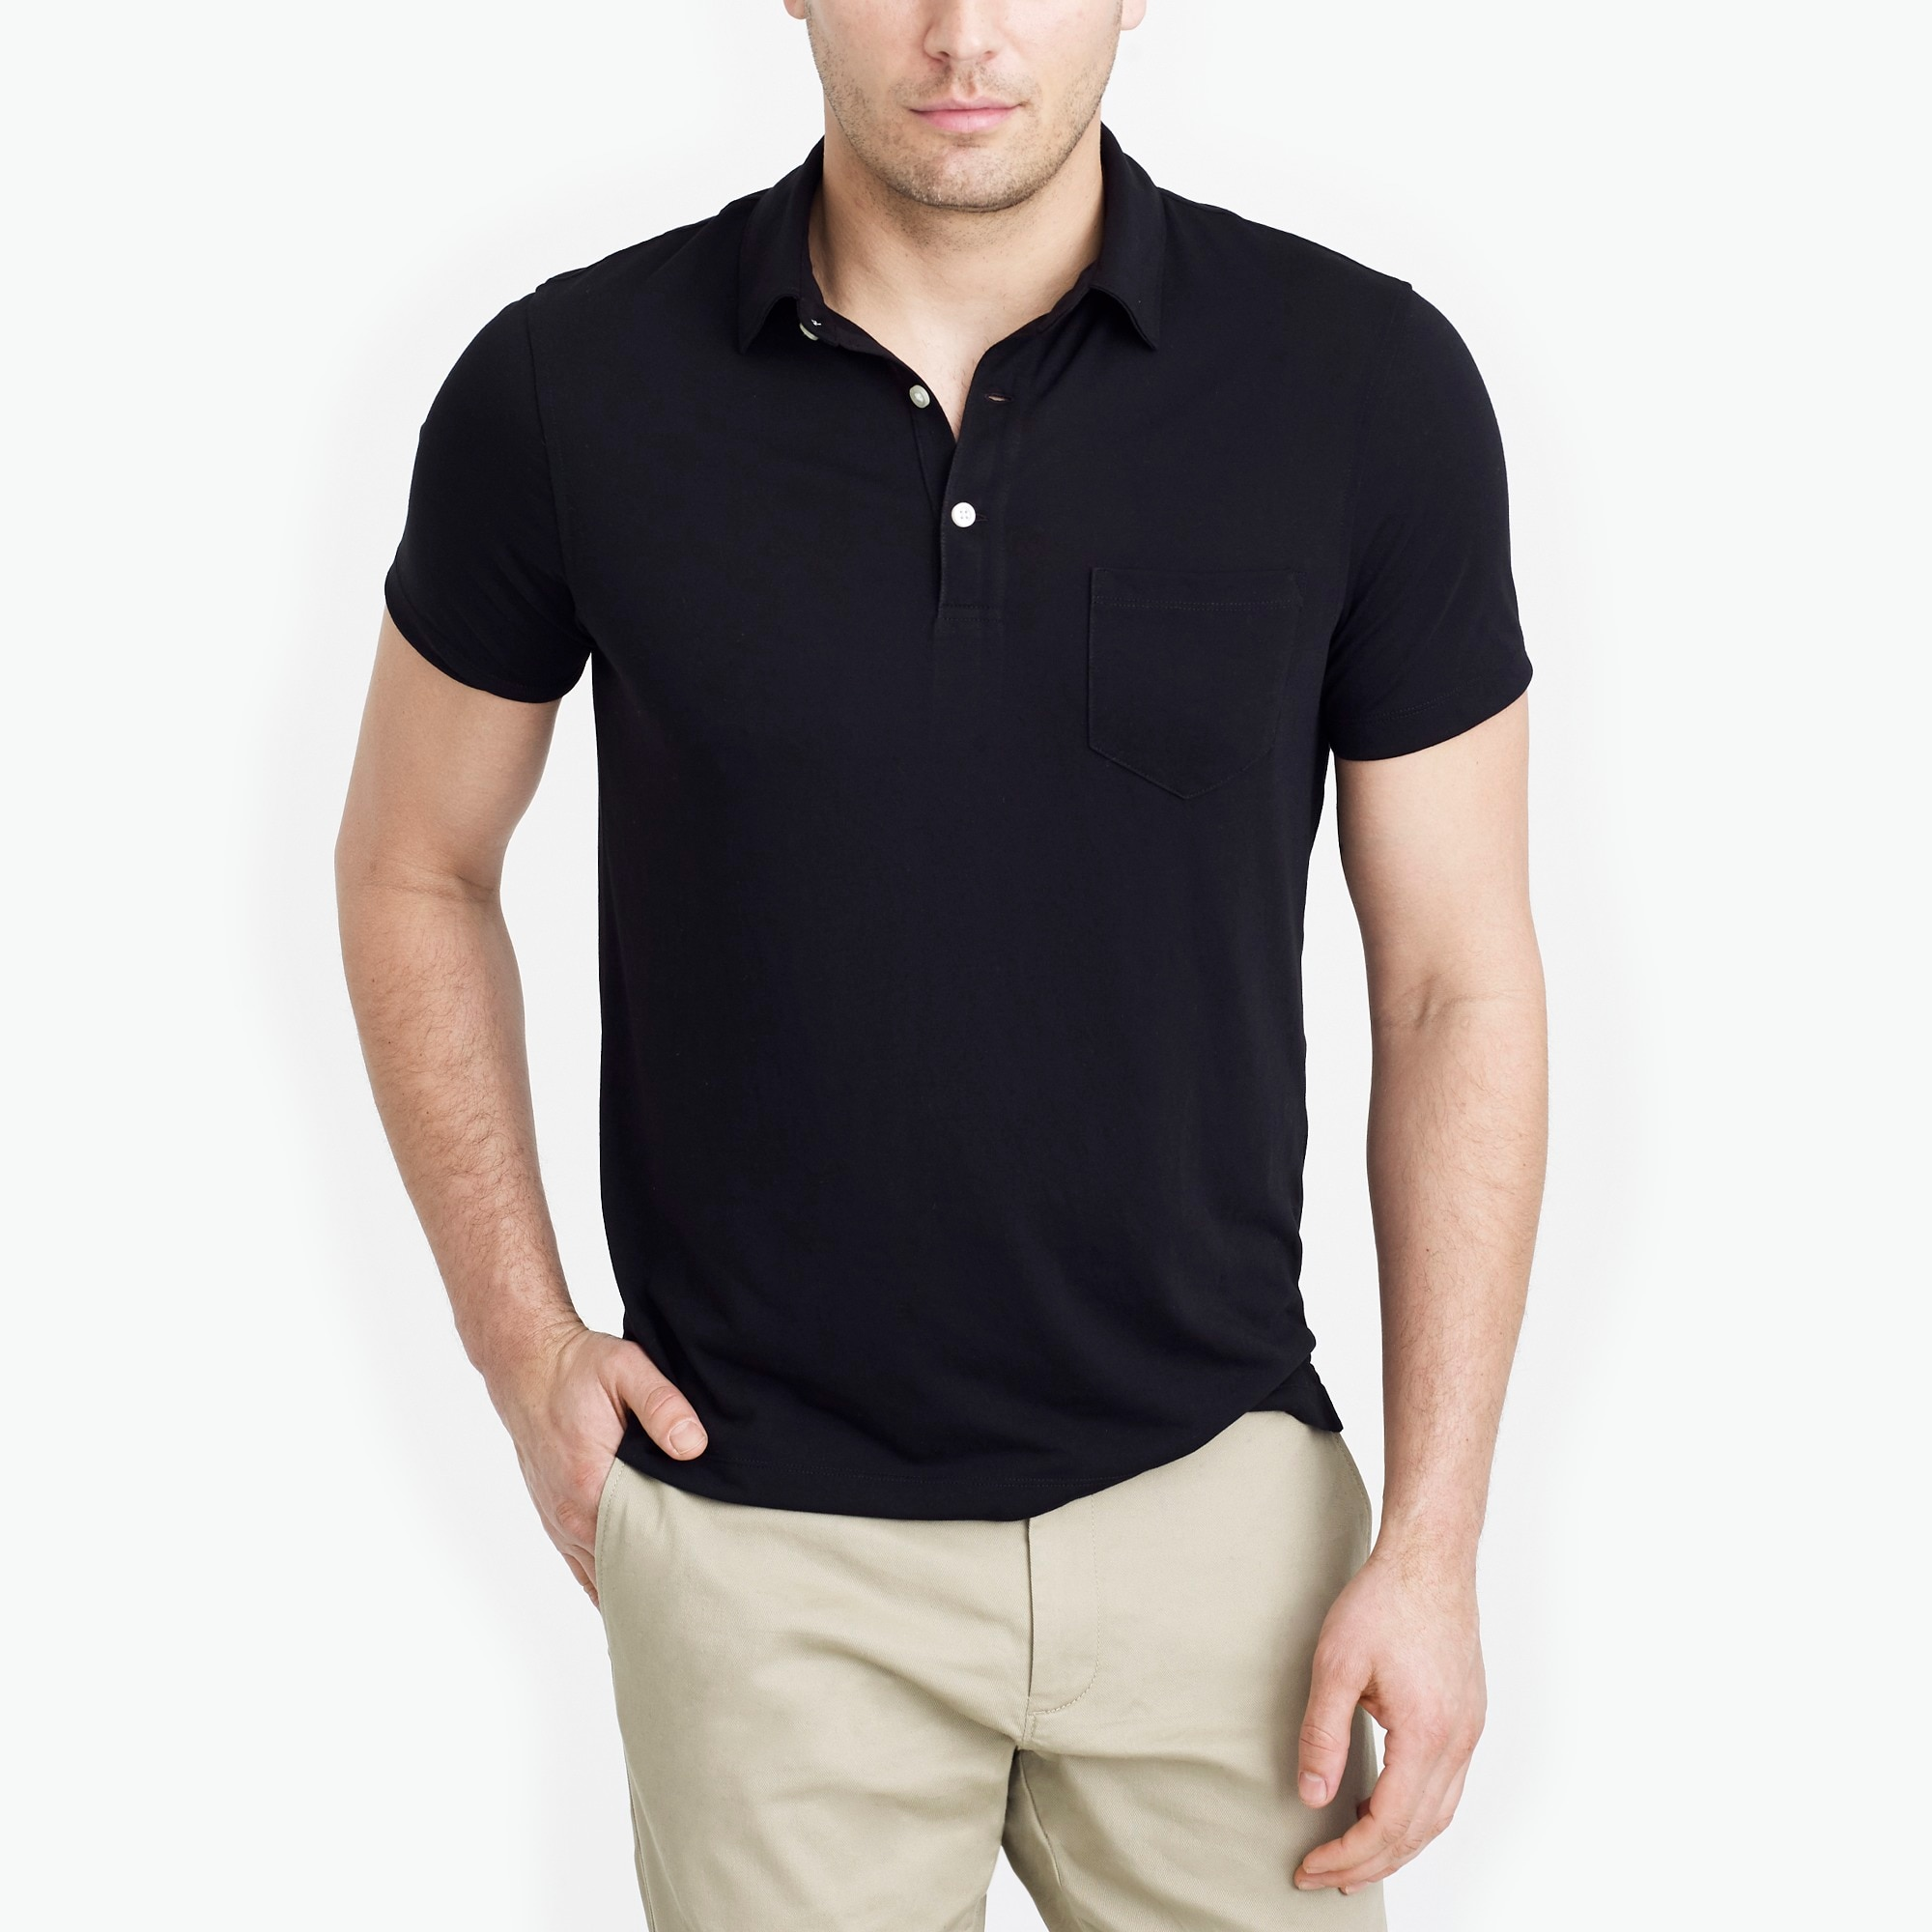 Performance polo shirt factorymen t-shirts & henleys c